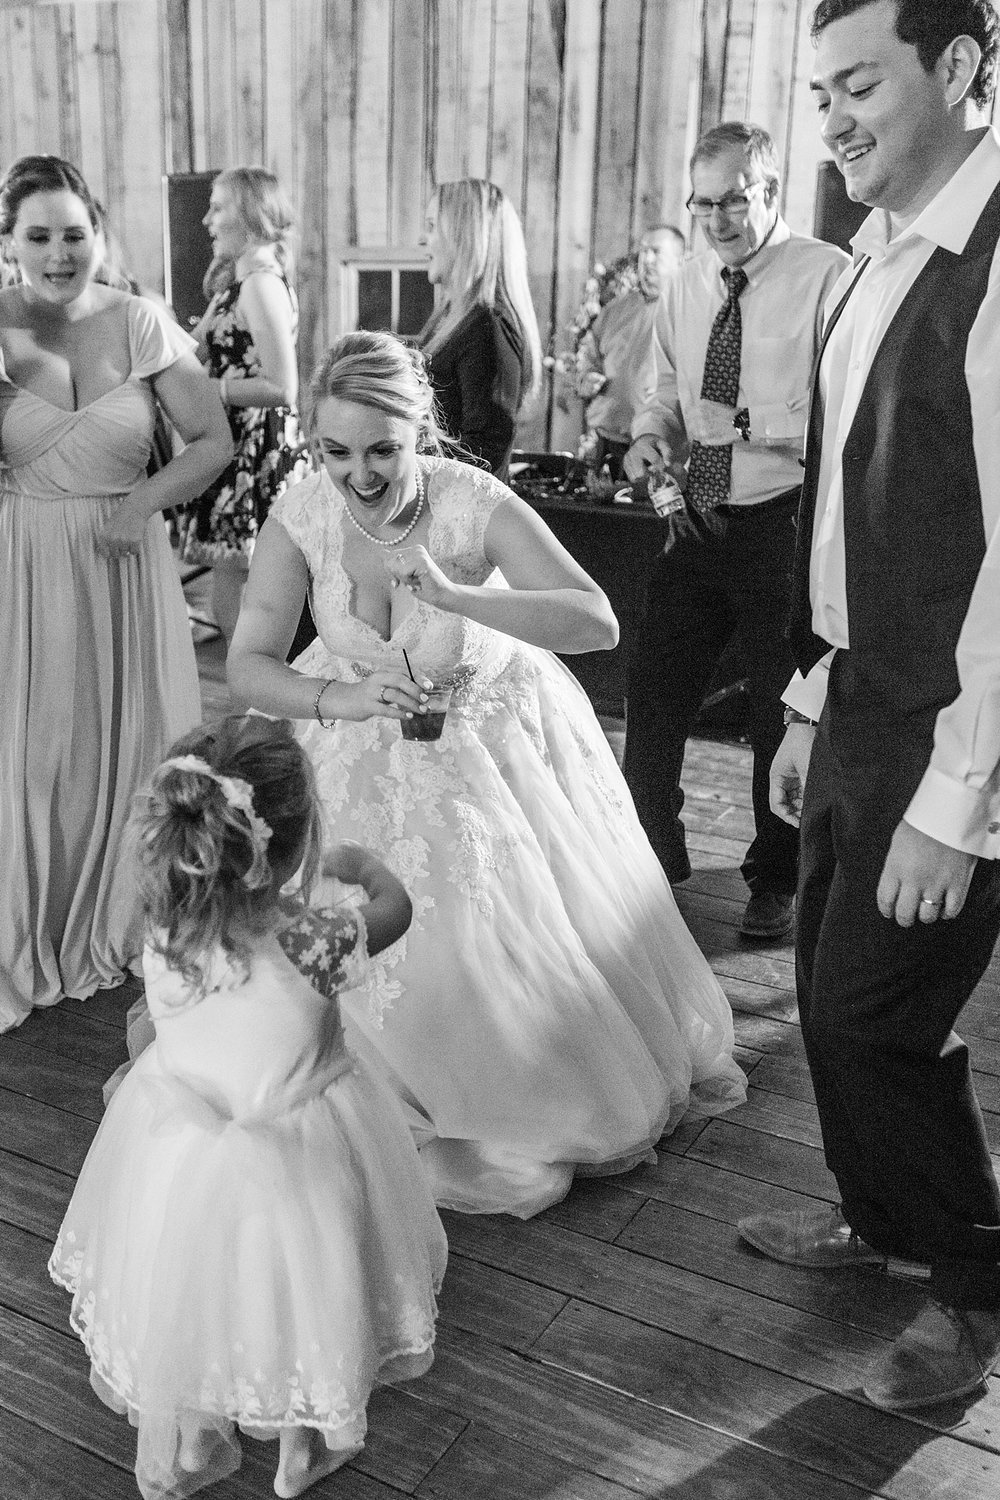 bride-dancing-wedding.jpg